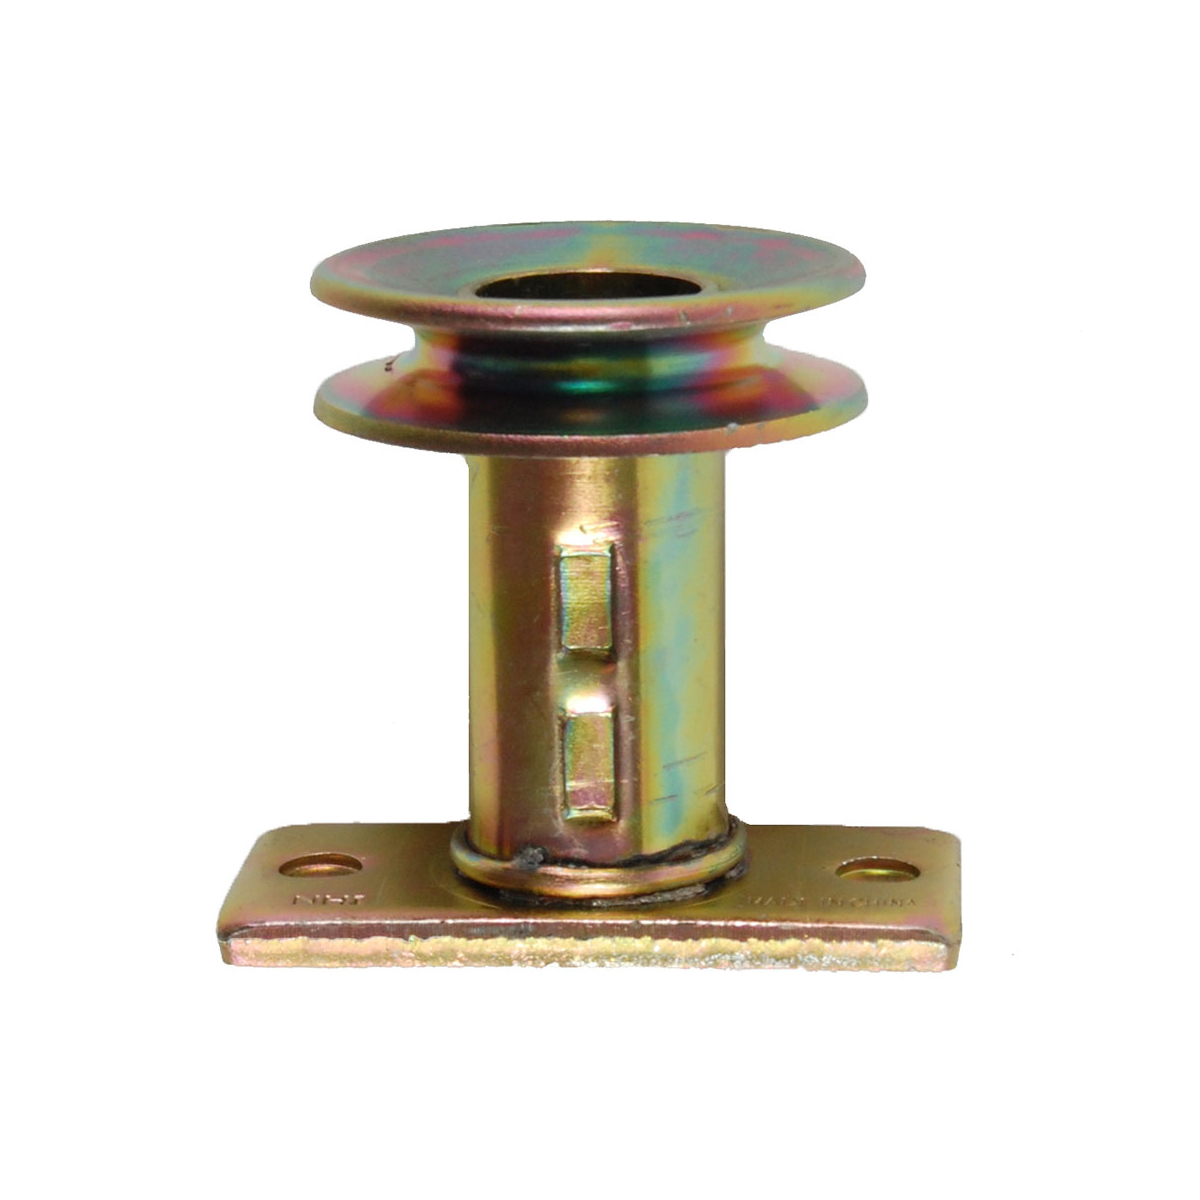 blade adapter with pulley (2.85 inch x 25 mm inside dia.) 687-02220